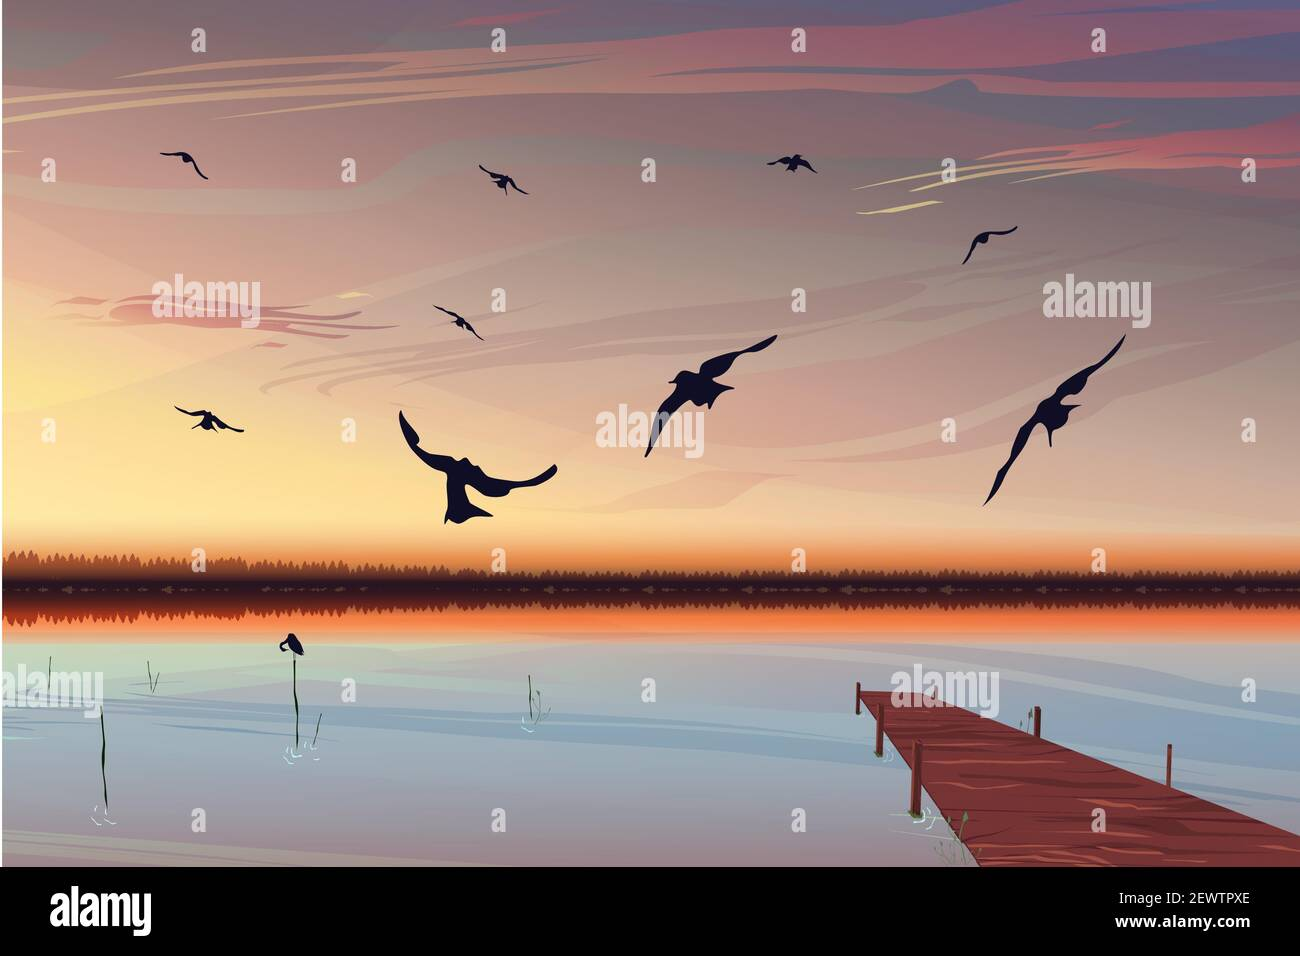 Bright realistic sunset over the lake with a pier in the background. Birds fly in the foreground. Beautiful dawn with a warm yellow-pink sky. Landscap Stock Vector